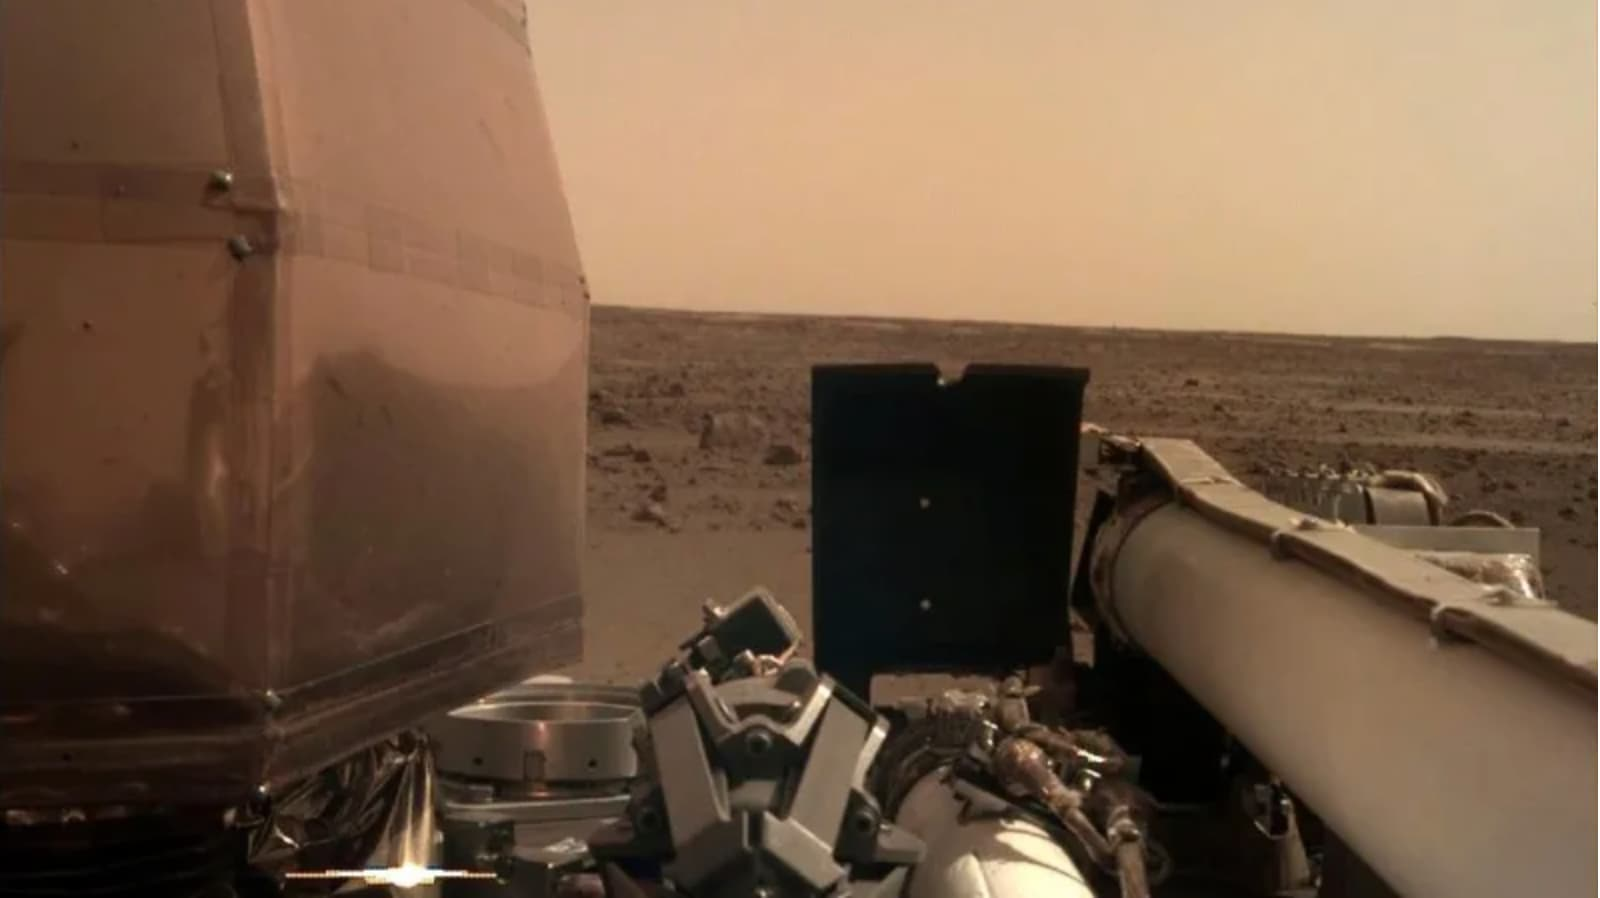 NASA's Lander InSight lands on Mars and has sent us two photos